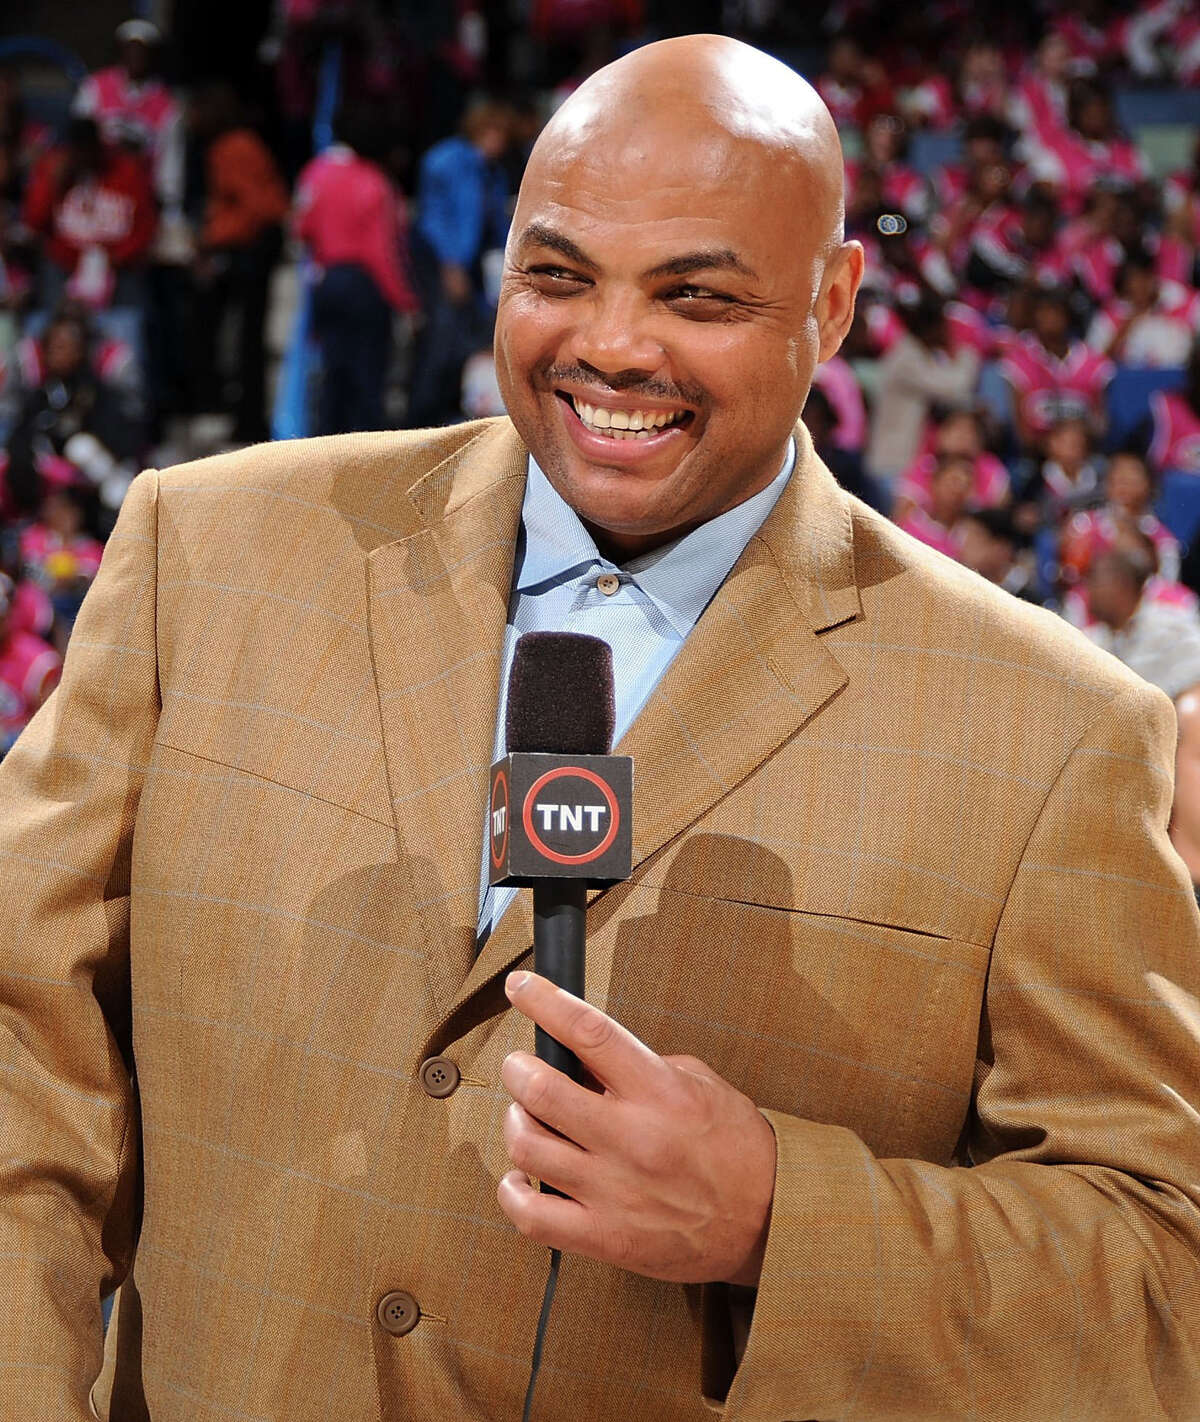 Readers continue to weigh in on sports broadcaster Charles Barkley's remarks about what he perceived to be the heaviness of San Antonio women.